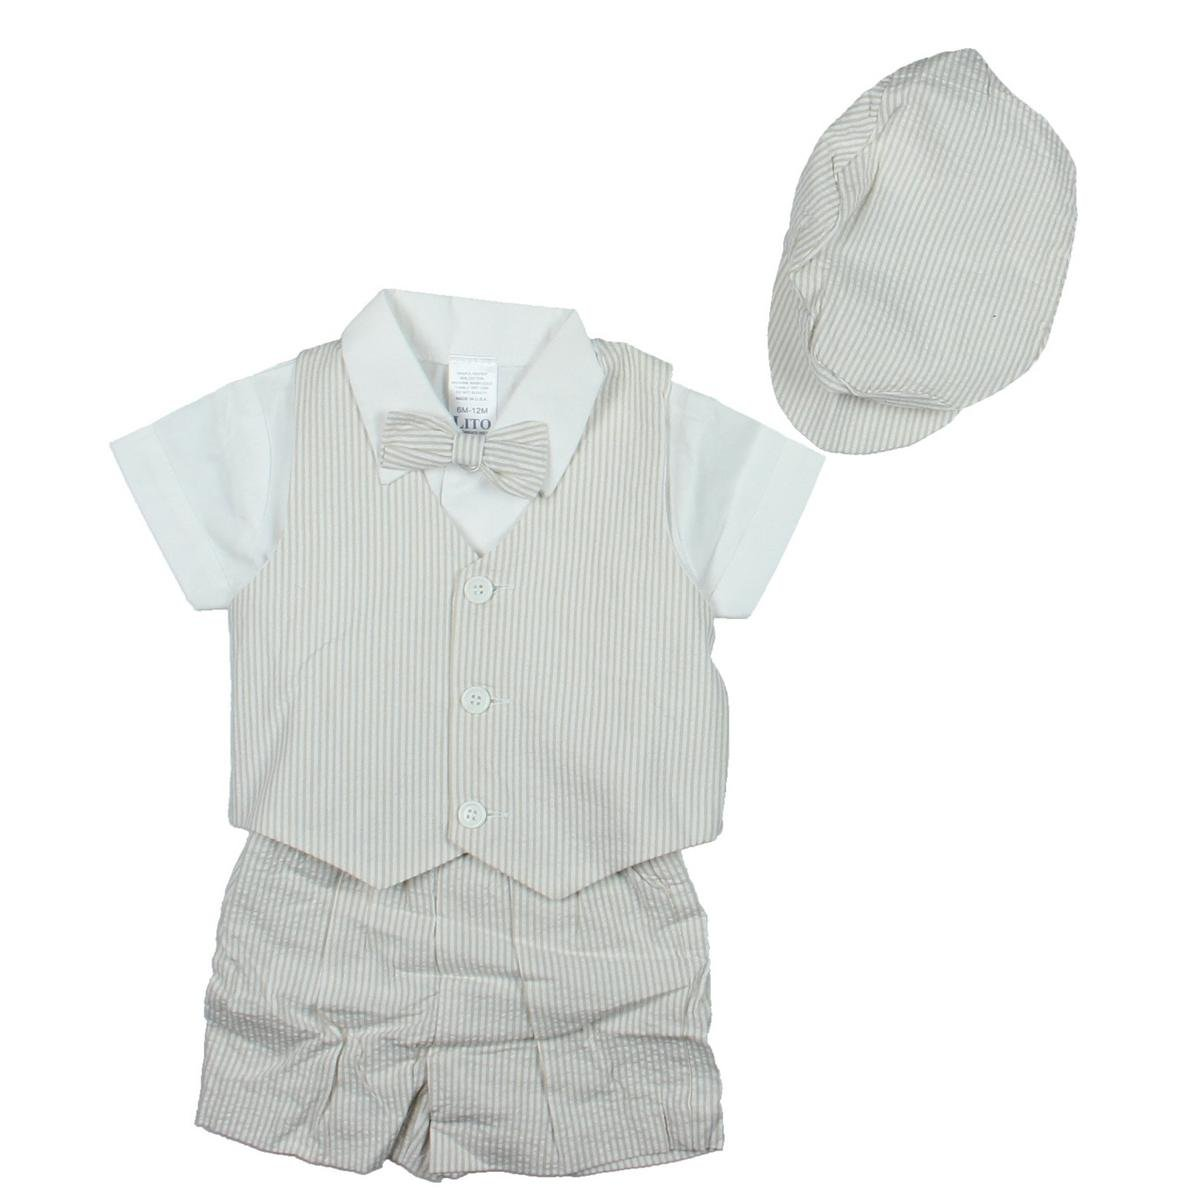 Amazon.com: Lito Baby Boys White Seersucker 5 Pc Vest Outfit Size 4T:  Infant And Toddler Shorts Clothing Sets: Clothing